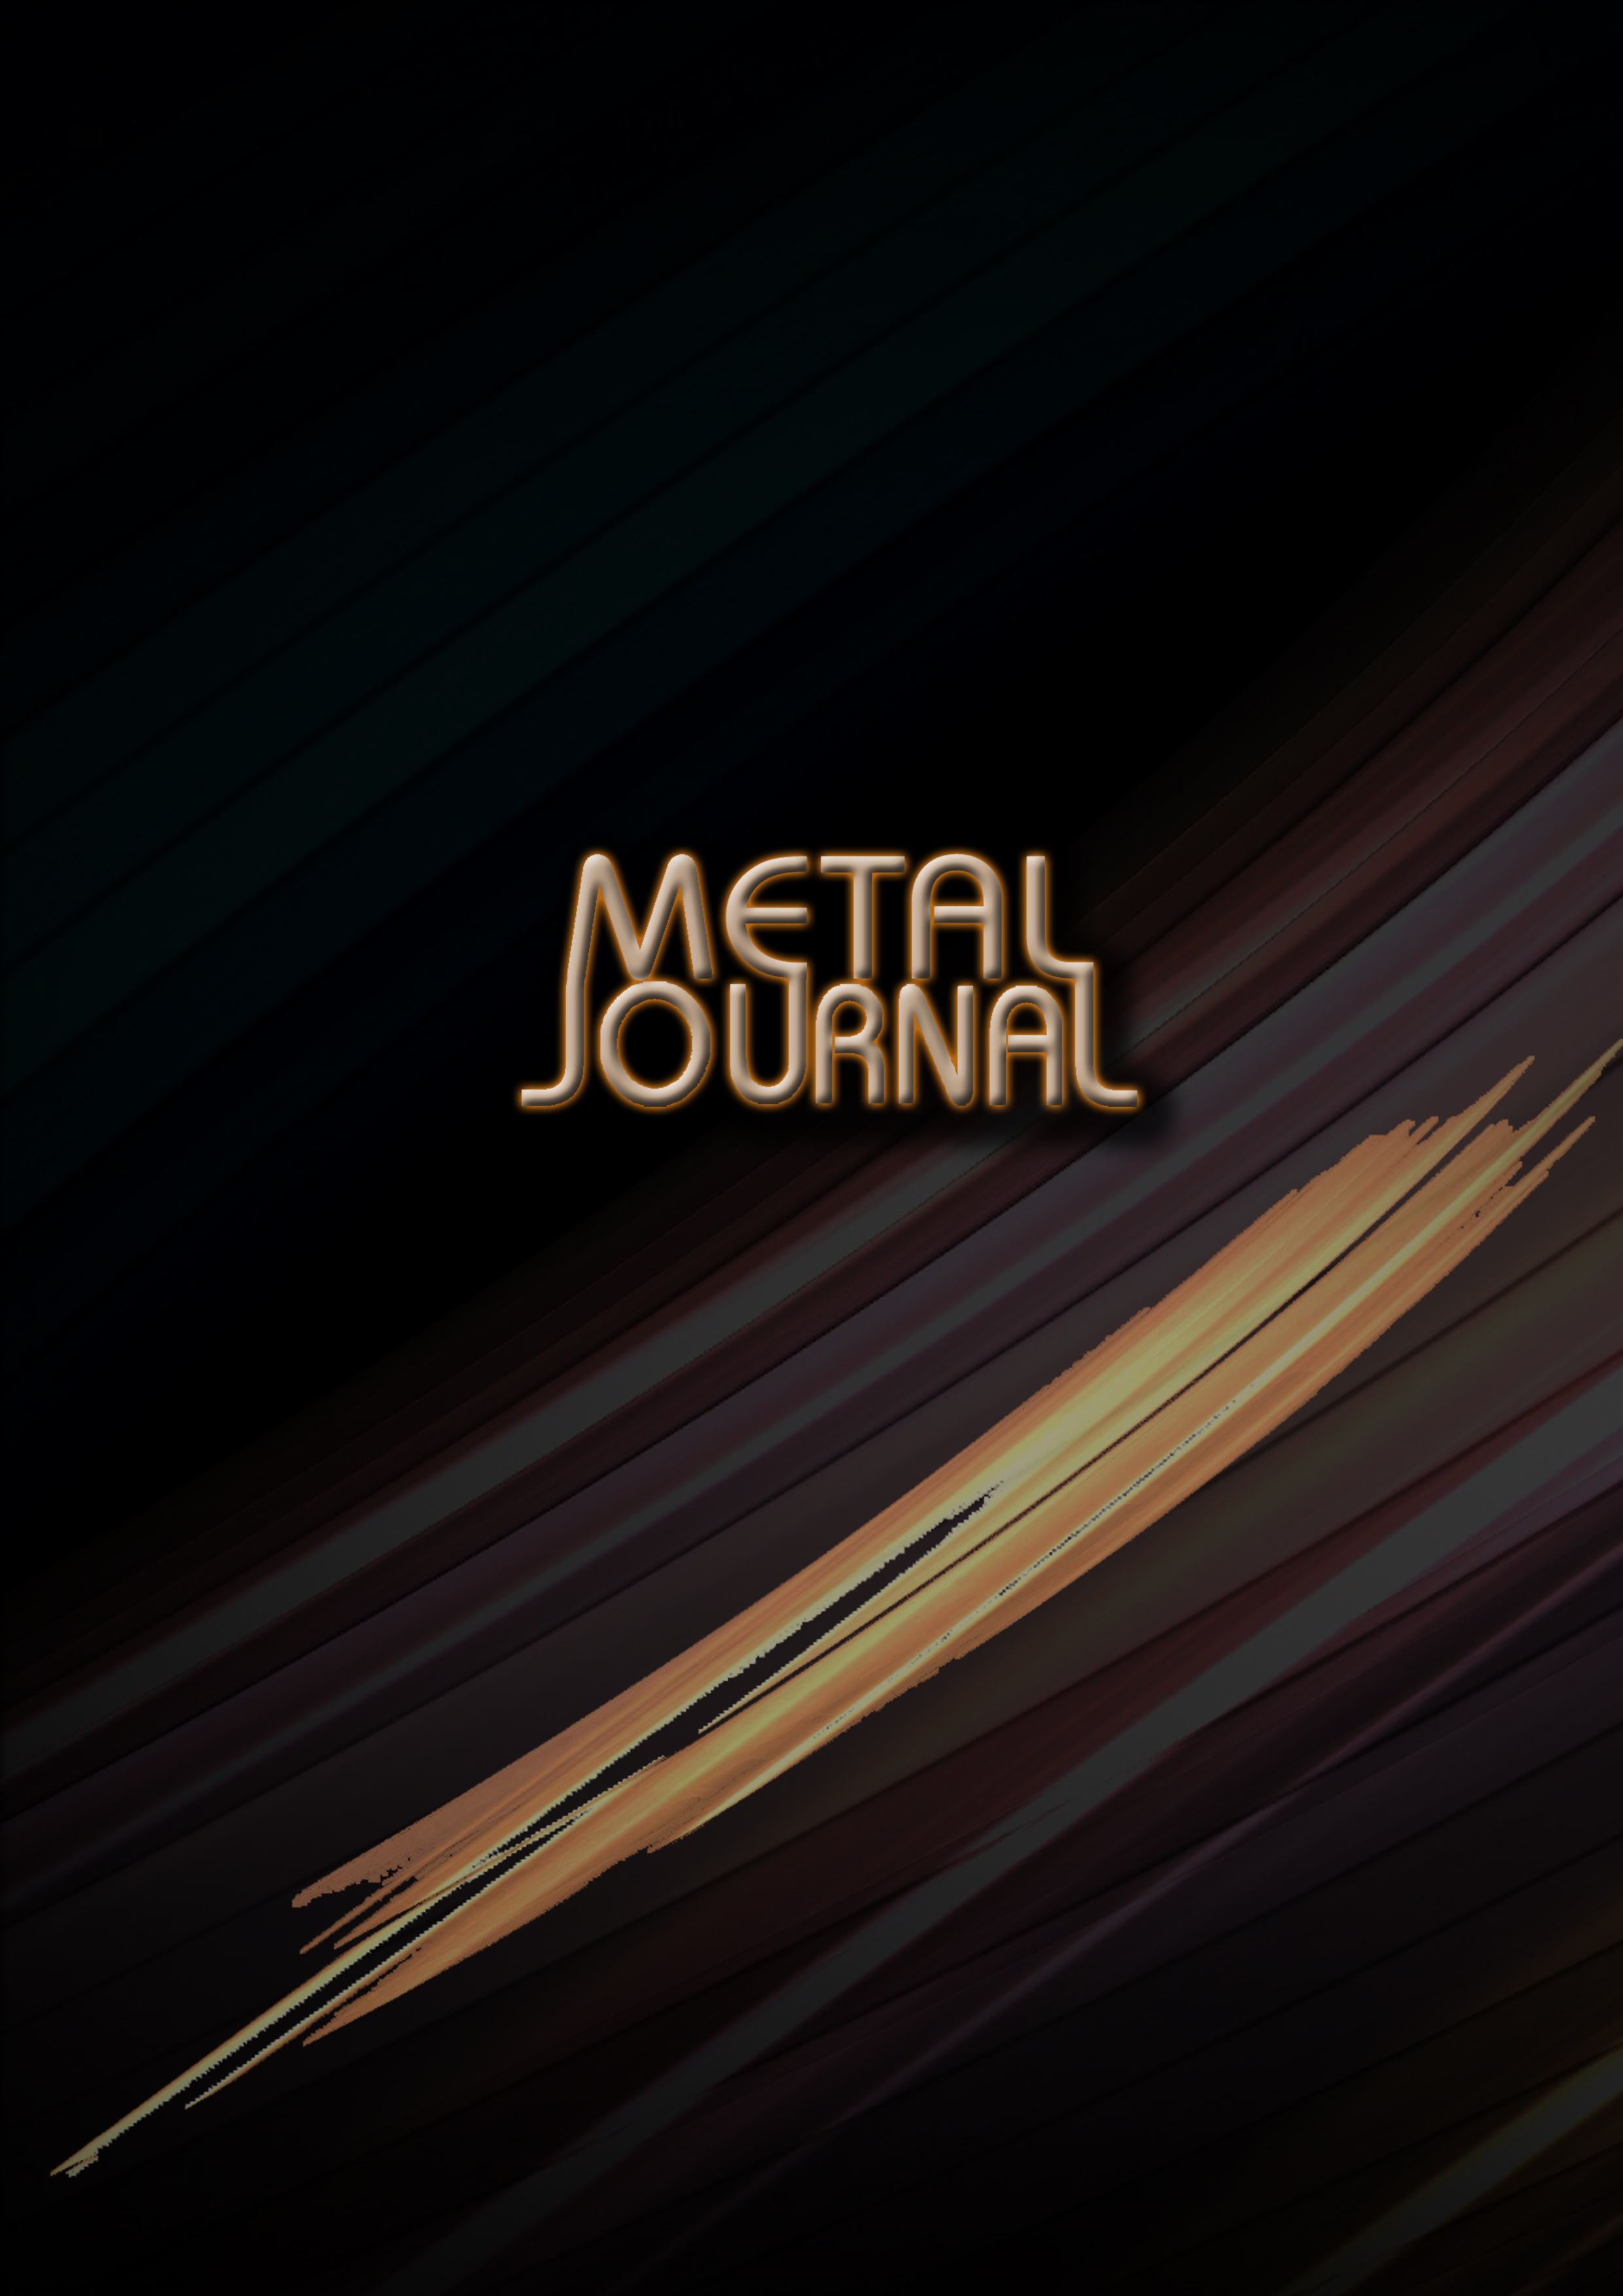 Metal journal